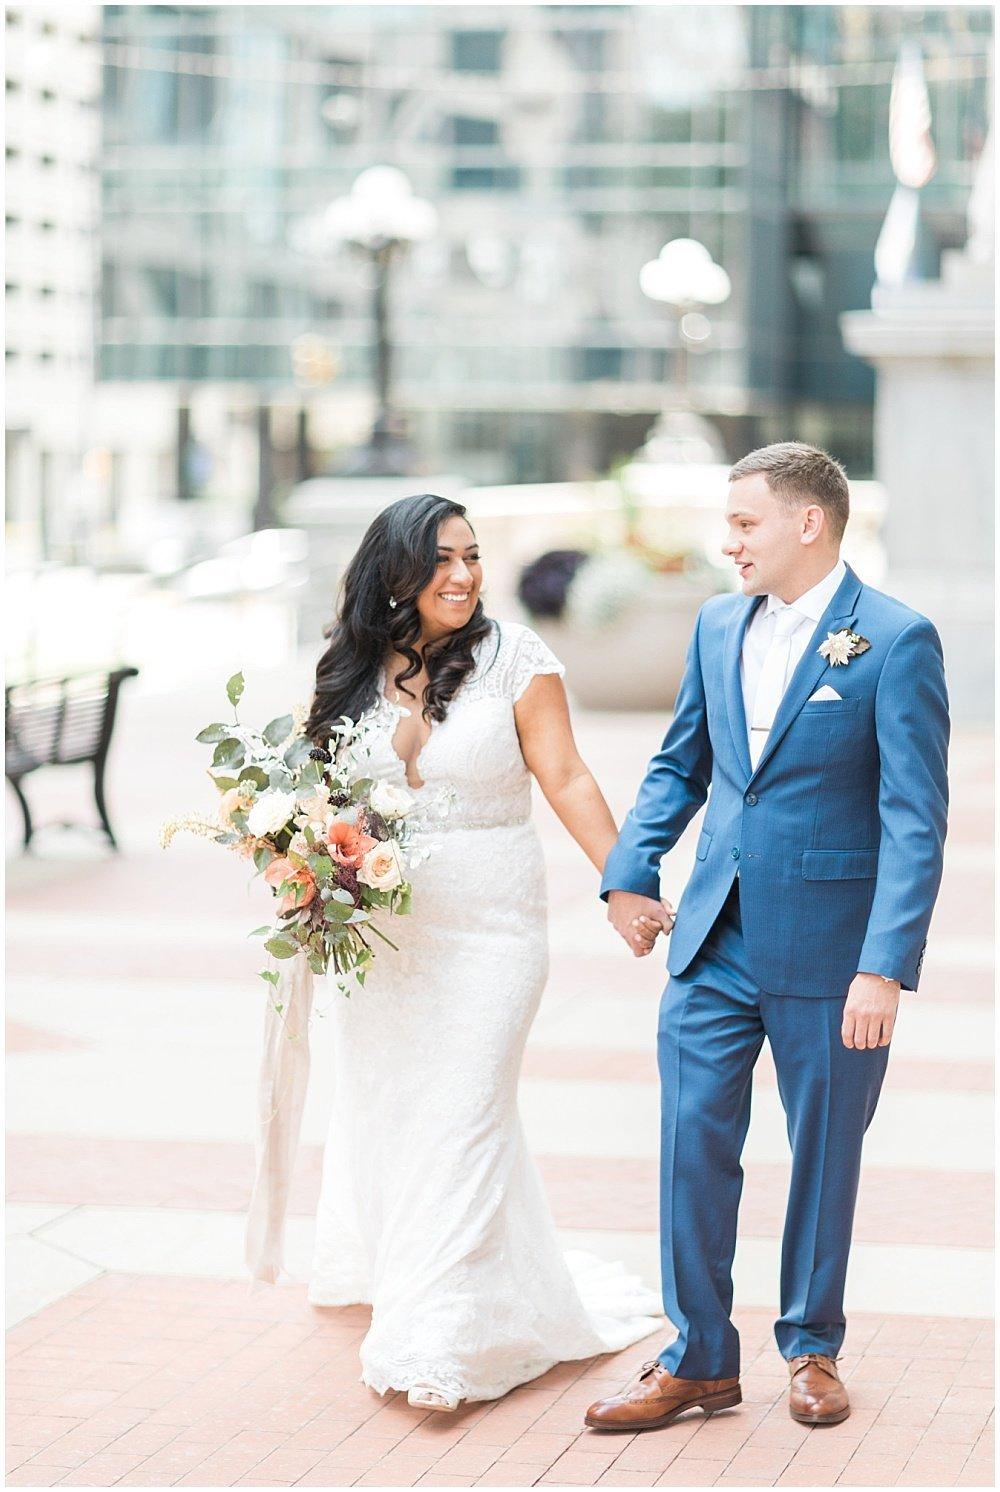 Summer-Mexican-Inspired-Gold-And-Floral-Crowne-Plaza-Indianapolis-Downtown-Union-Station-Wedding-Cory-Jackie-Wedding-Photographers-Jessica-Dum-Wedding-Coordination_photo___0020